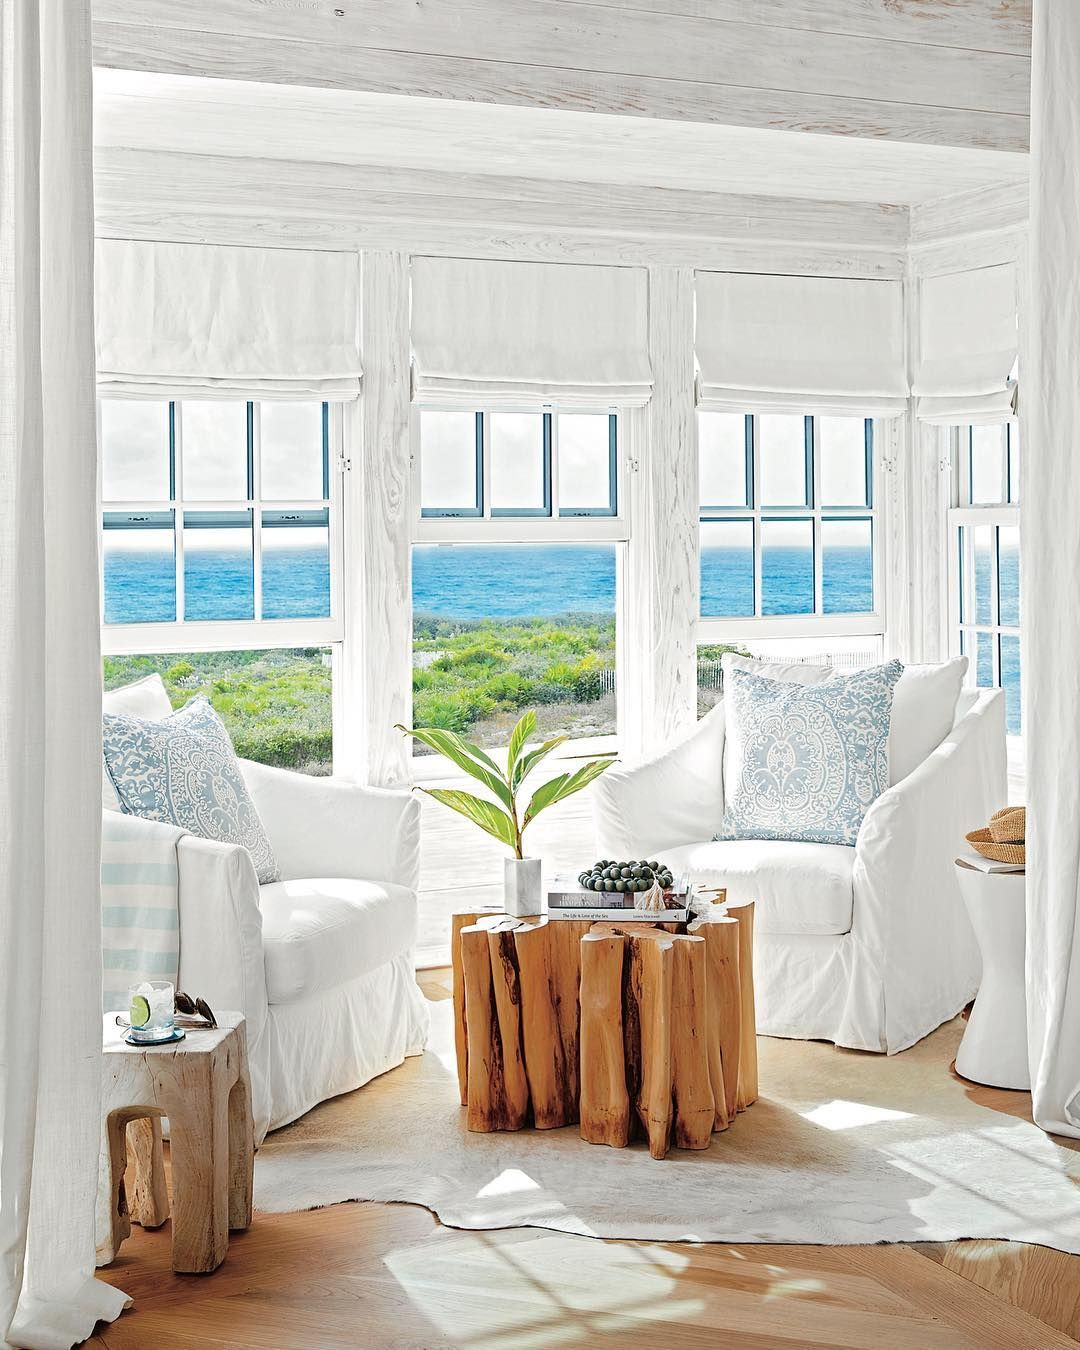 Simple White Clean Seating With Driftwood Tables In This Beach House Decor Coastal Living Rooms Beach House Interior Design Beach House Interior